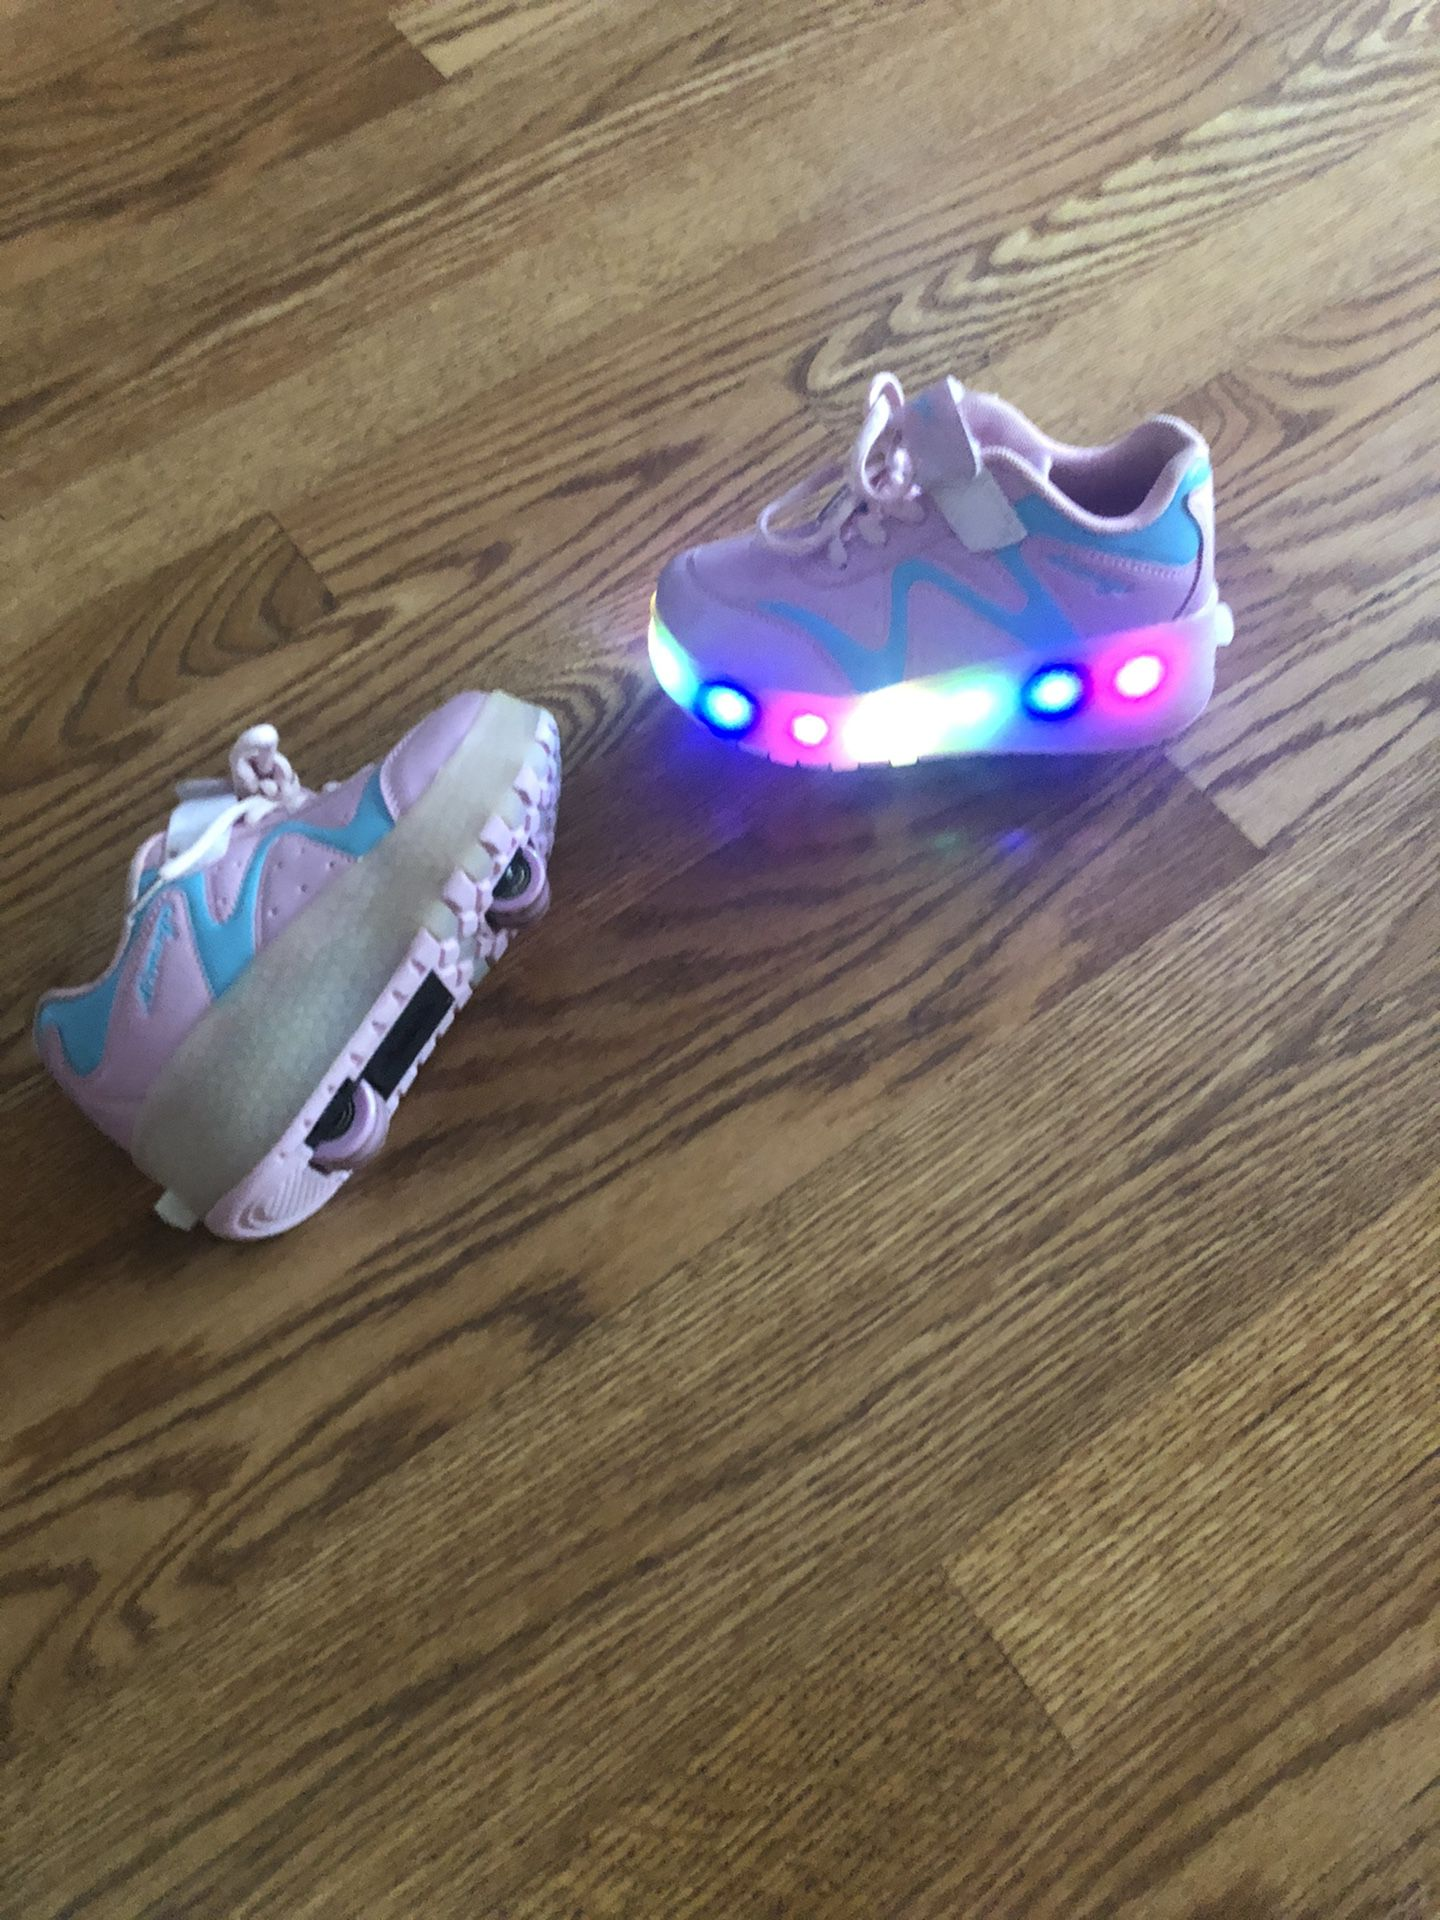 Use wheels shoes size 13